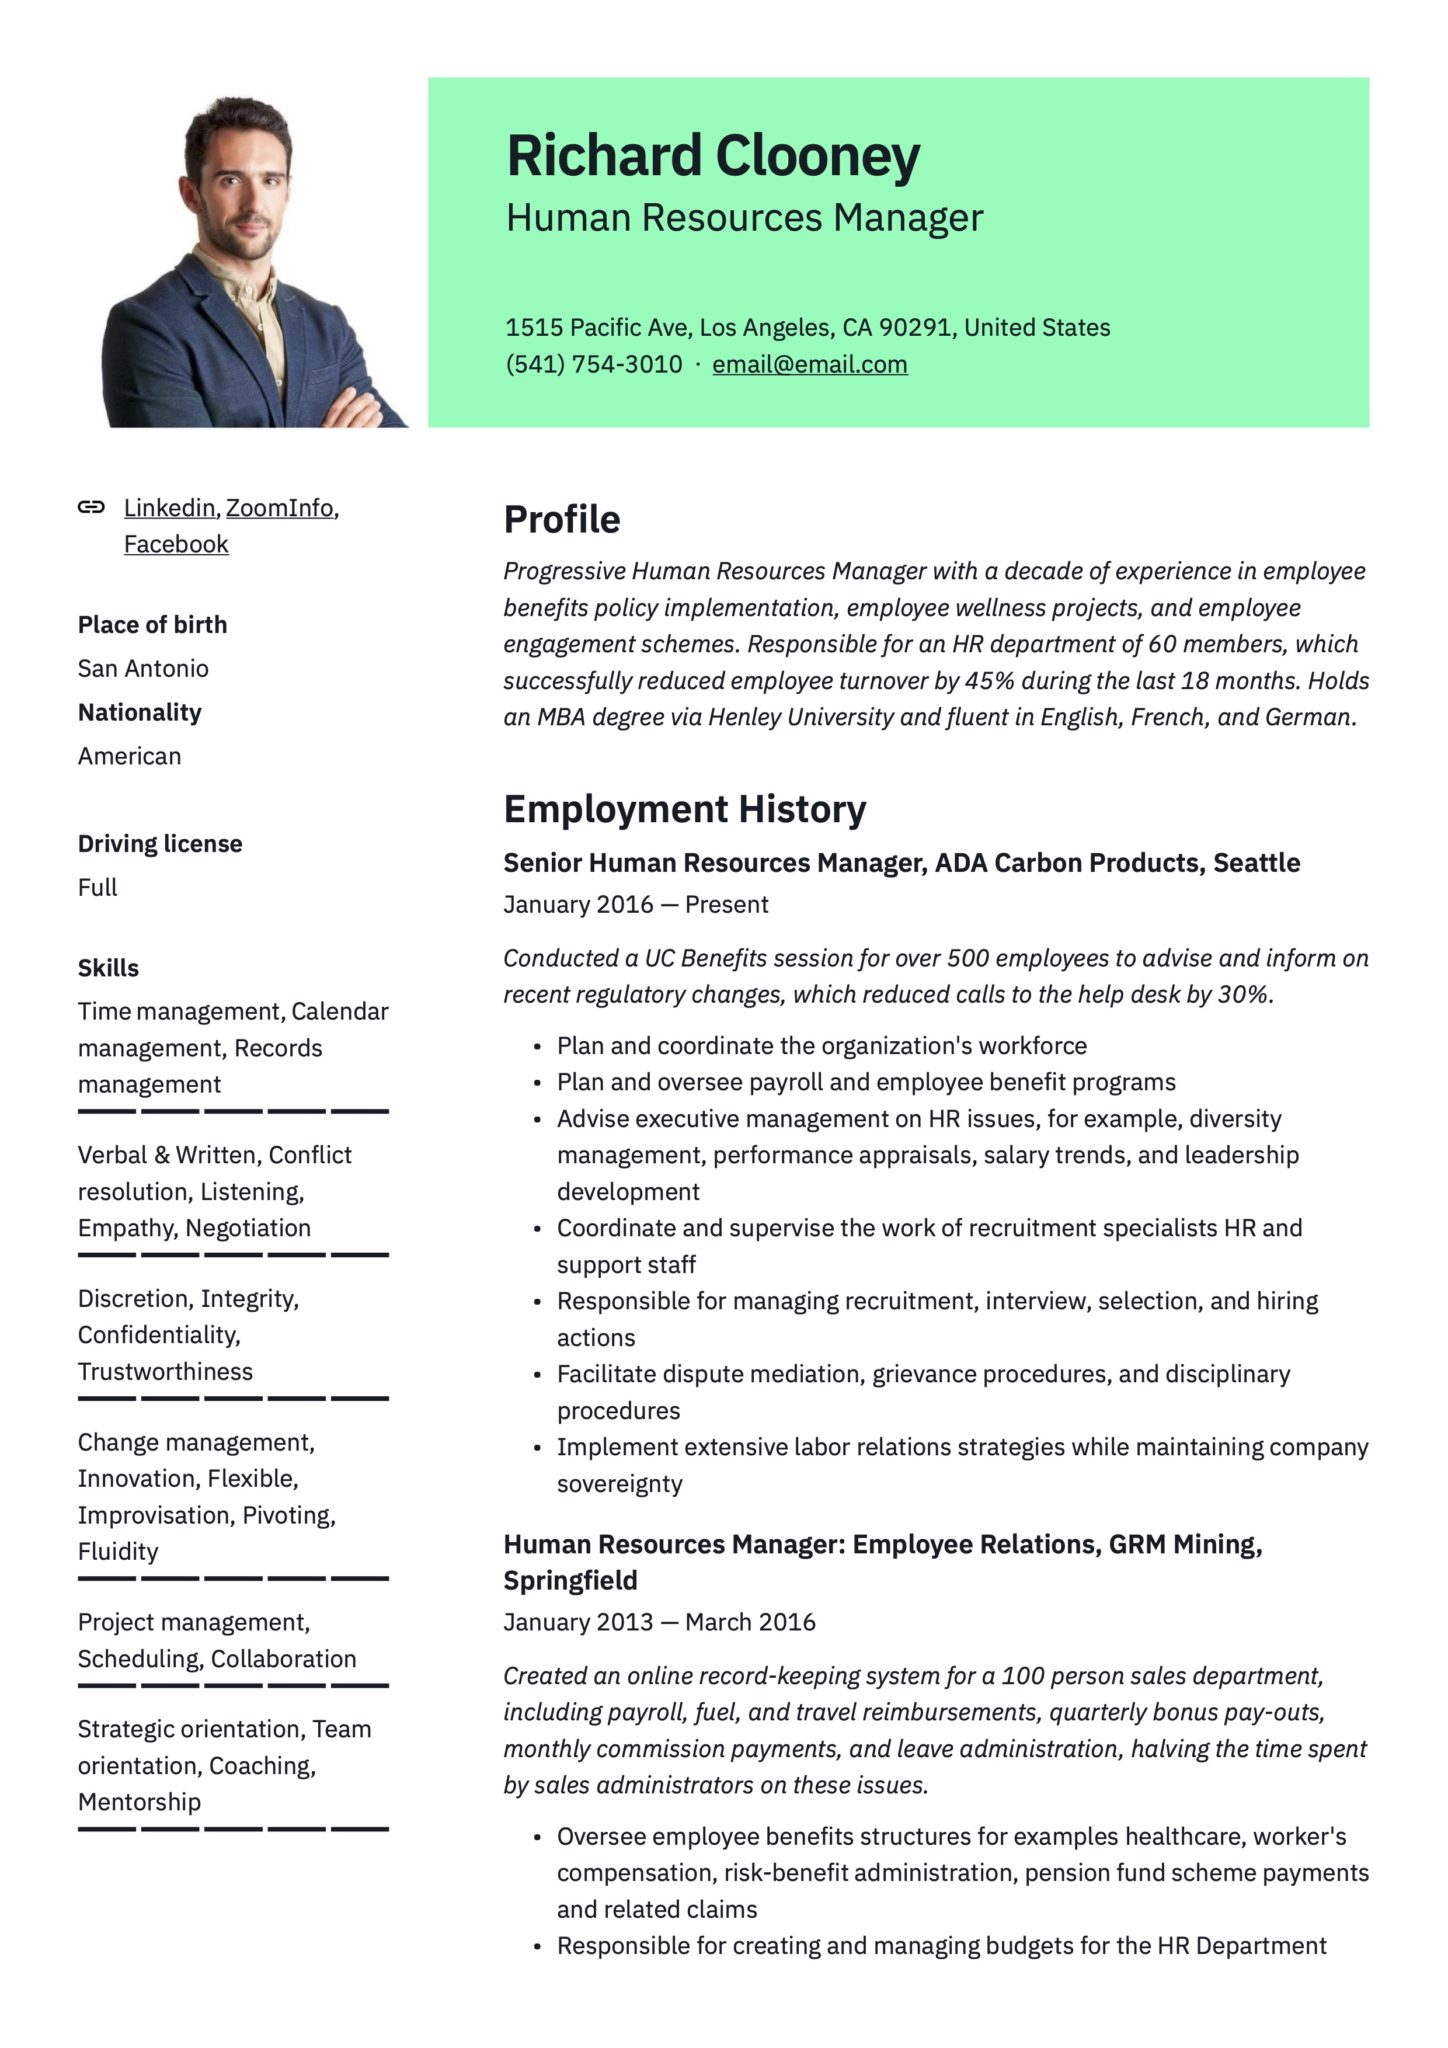 17 human resources manager resumes  guide  2020